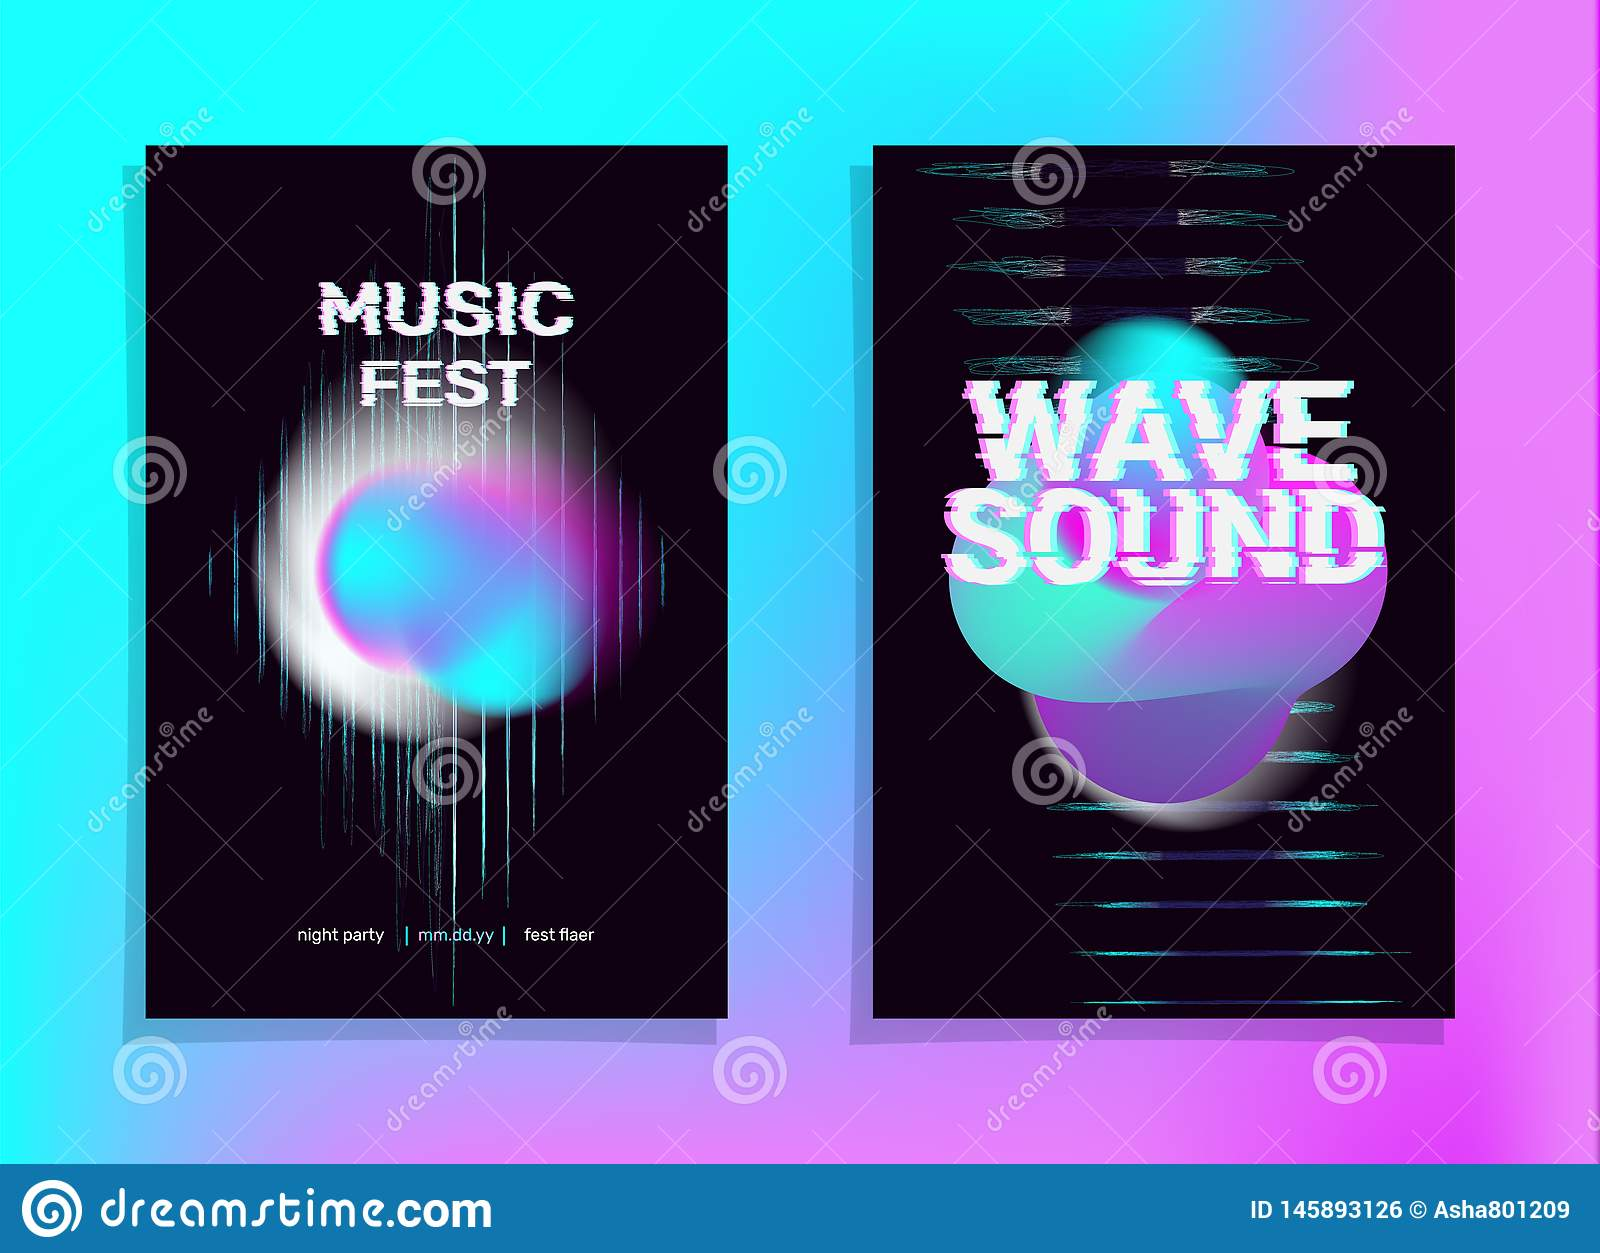 Equalizer Holographic Vaporwave Stock Vector Illustration Of Cover Beat 145893126